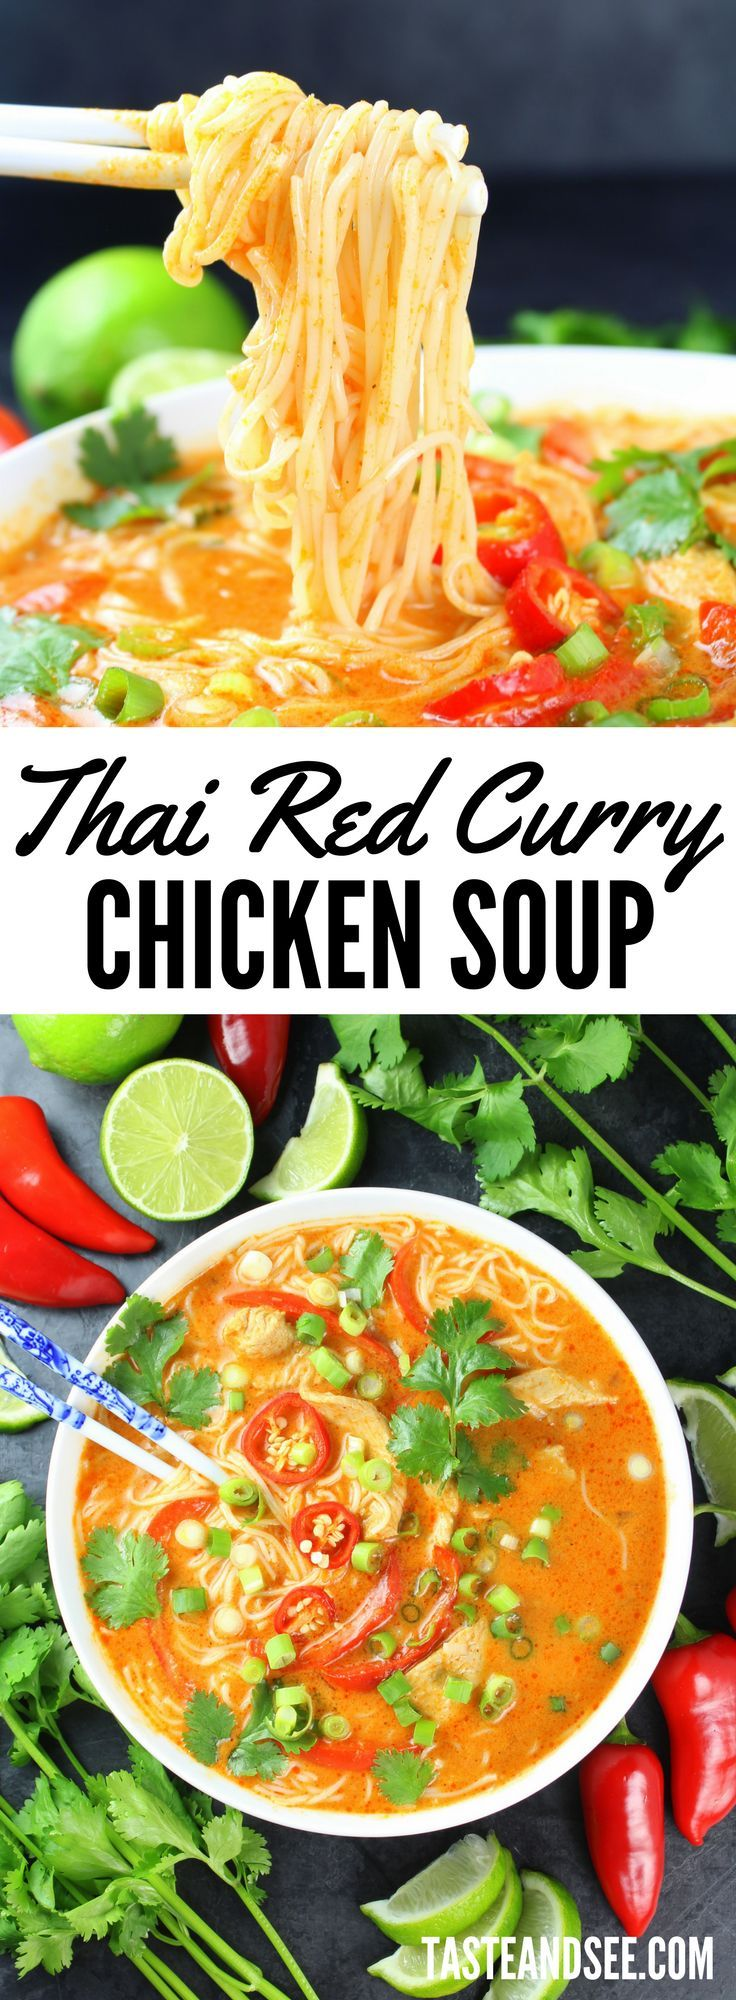 Thai Red #Curry Chicken #Soup - Warm creamy comforting red curry soup with a touch of sweetness and a bit of a spicy kick.  https://tasteandsee.com